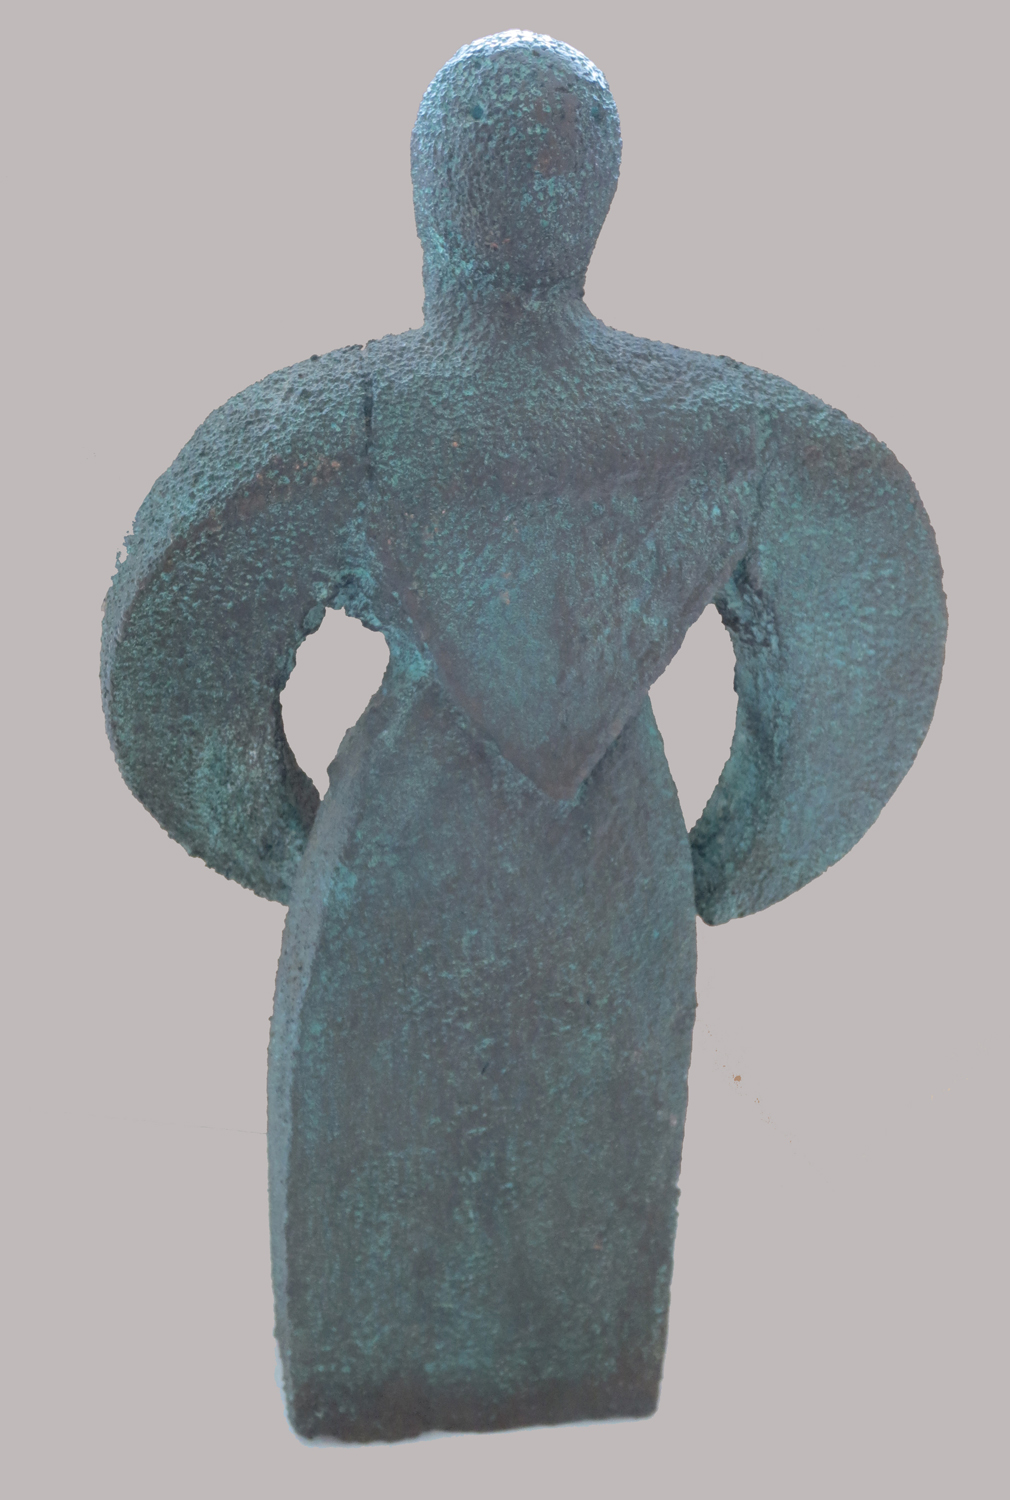 Woman (with Arms Curved), 1991